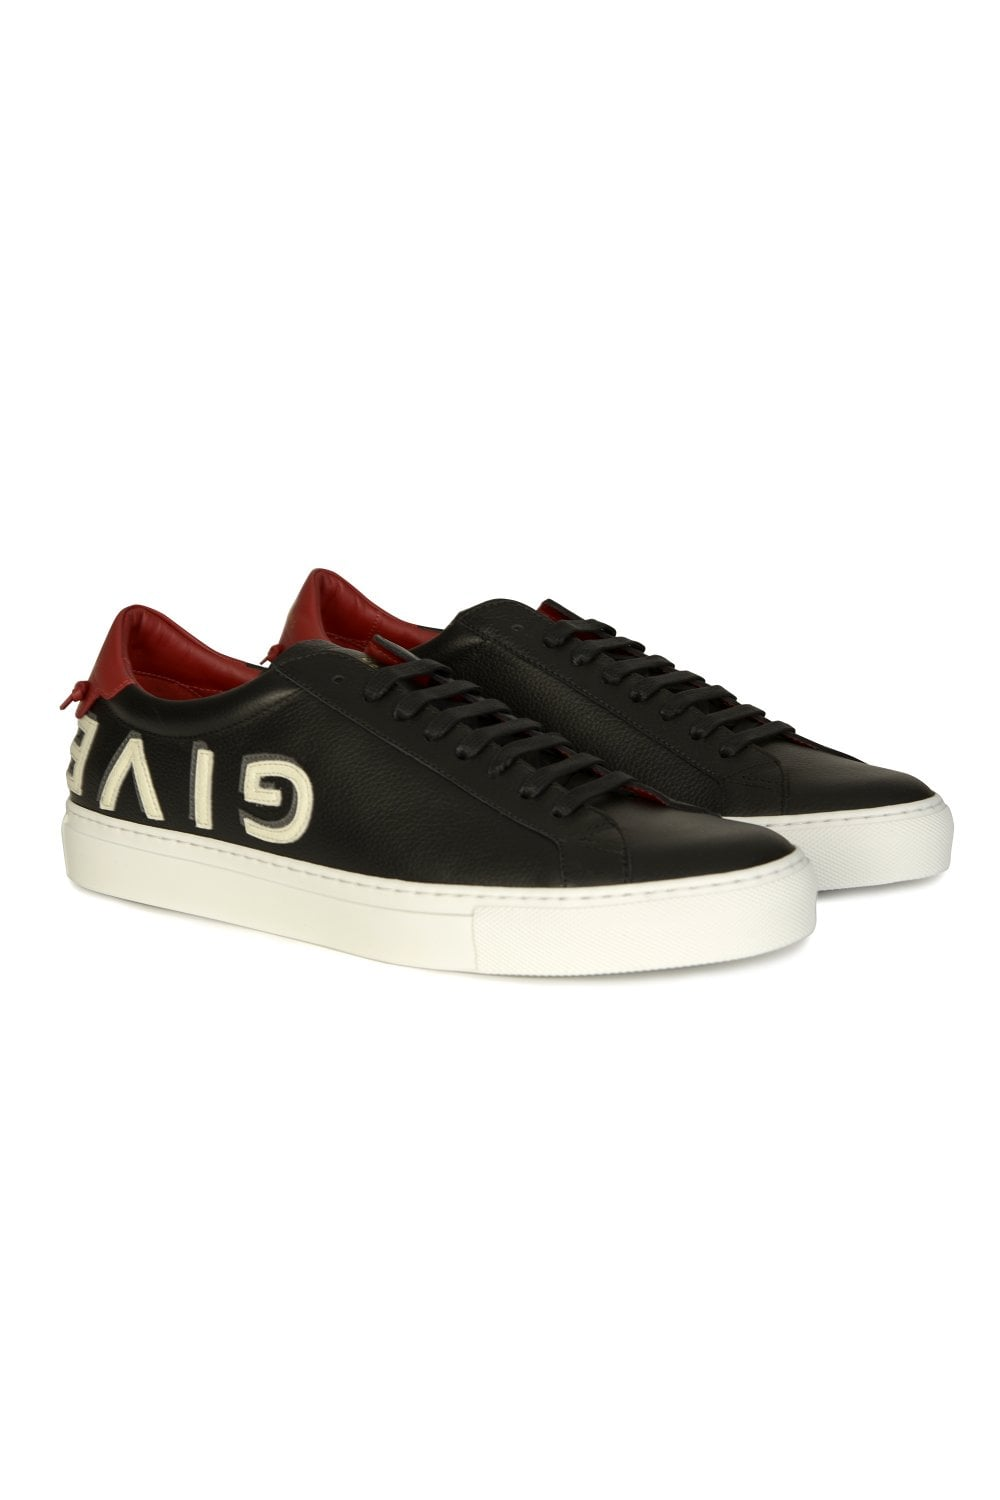 8c0631383c7 GIVENCHY Urban Street Low Top Trainers - Clothing from Circle Fashion UK